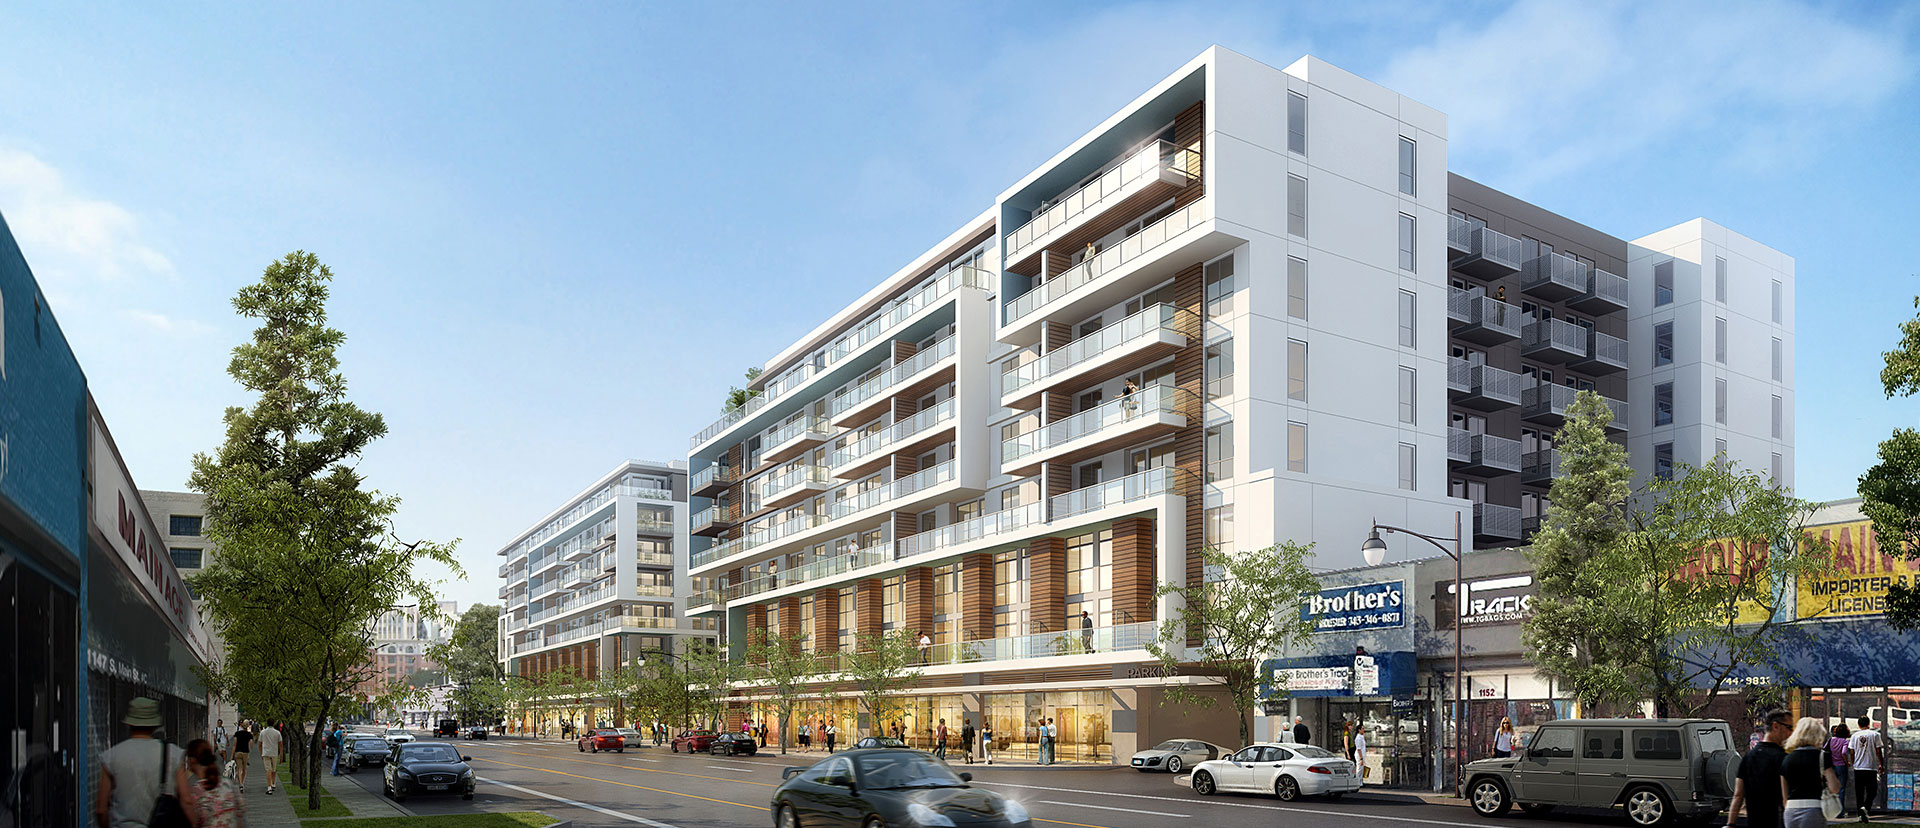 New 8-Story Complex Planned for Main Street in DTLA